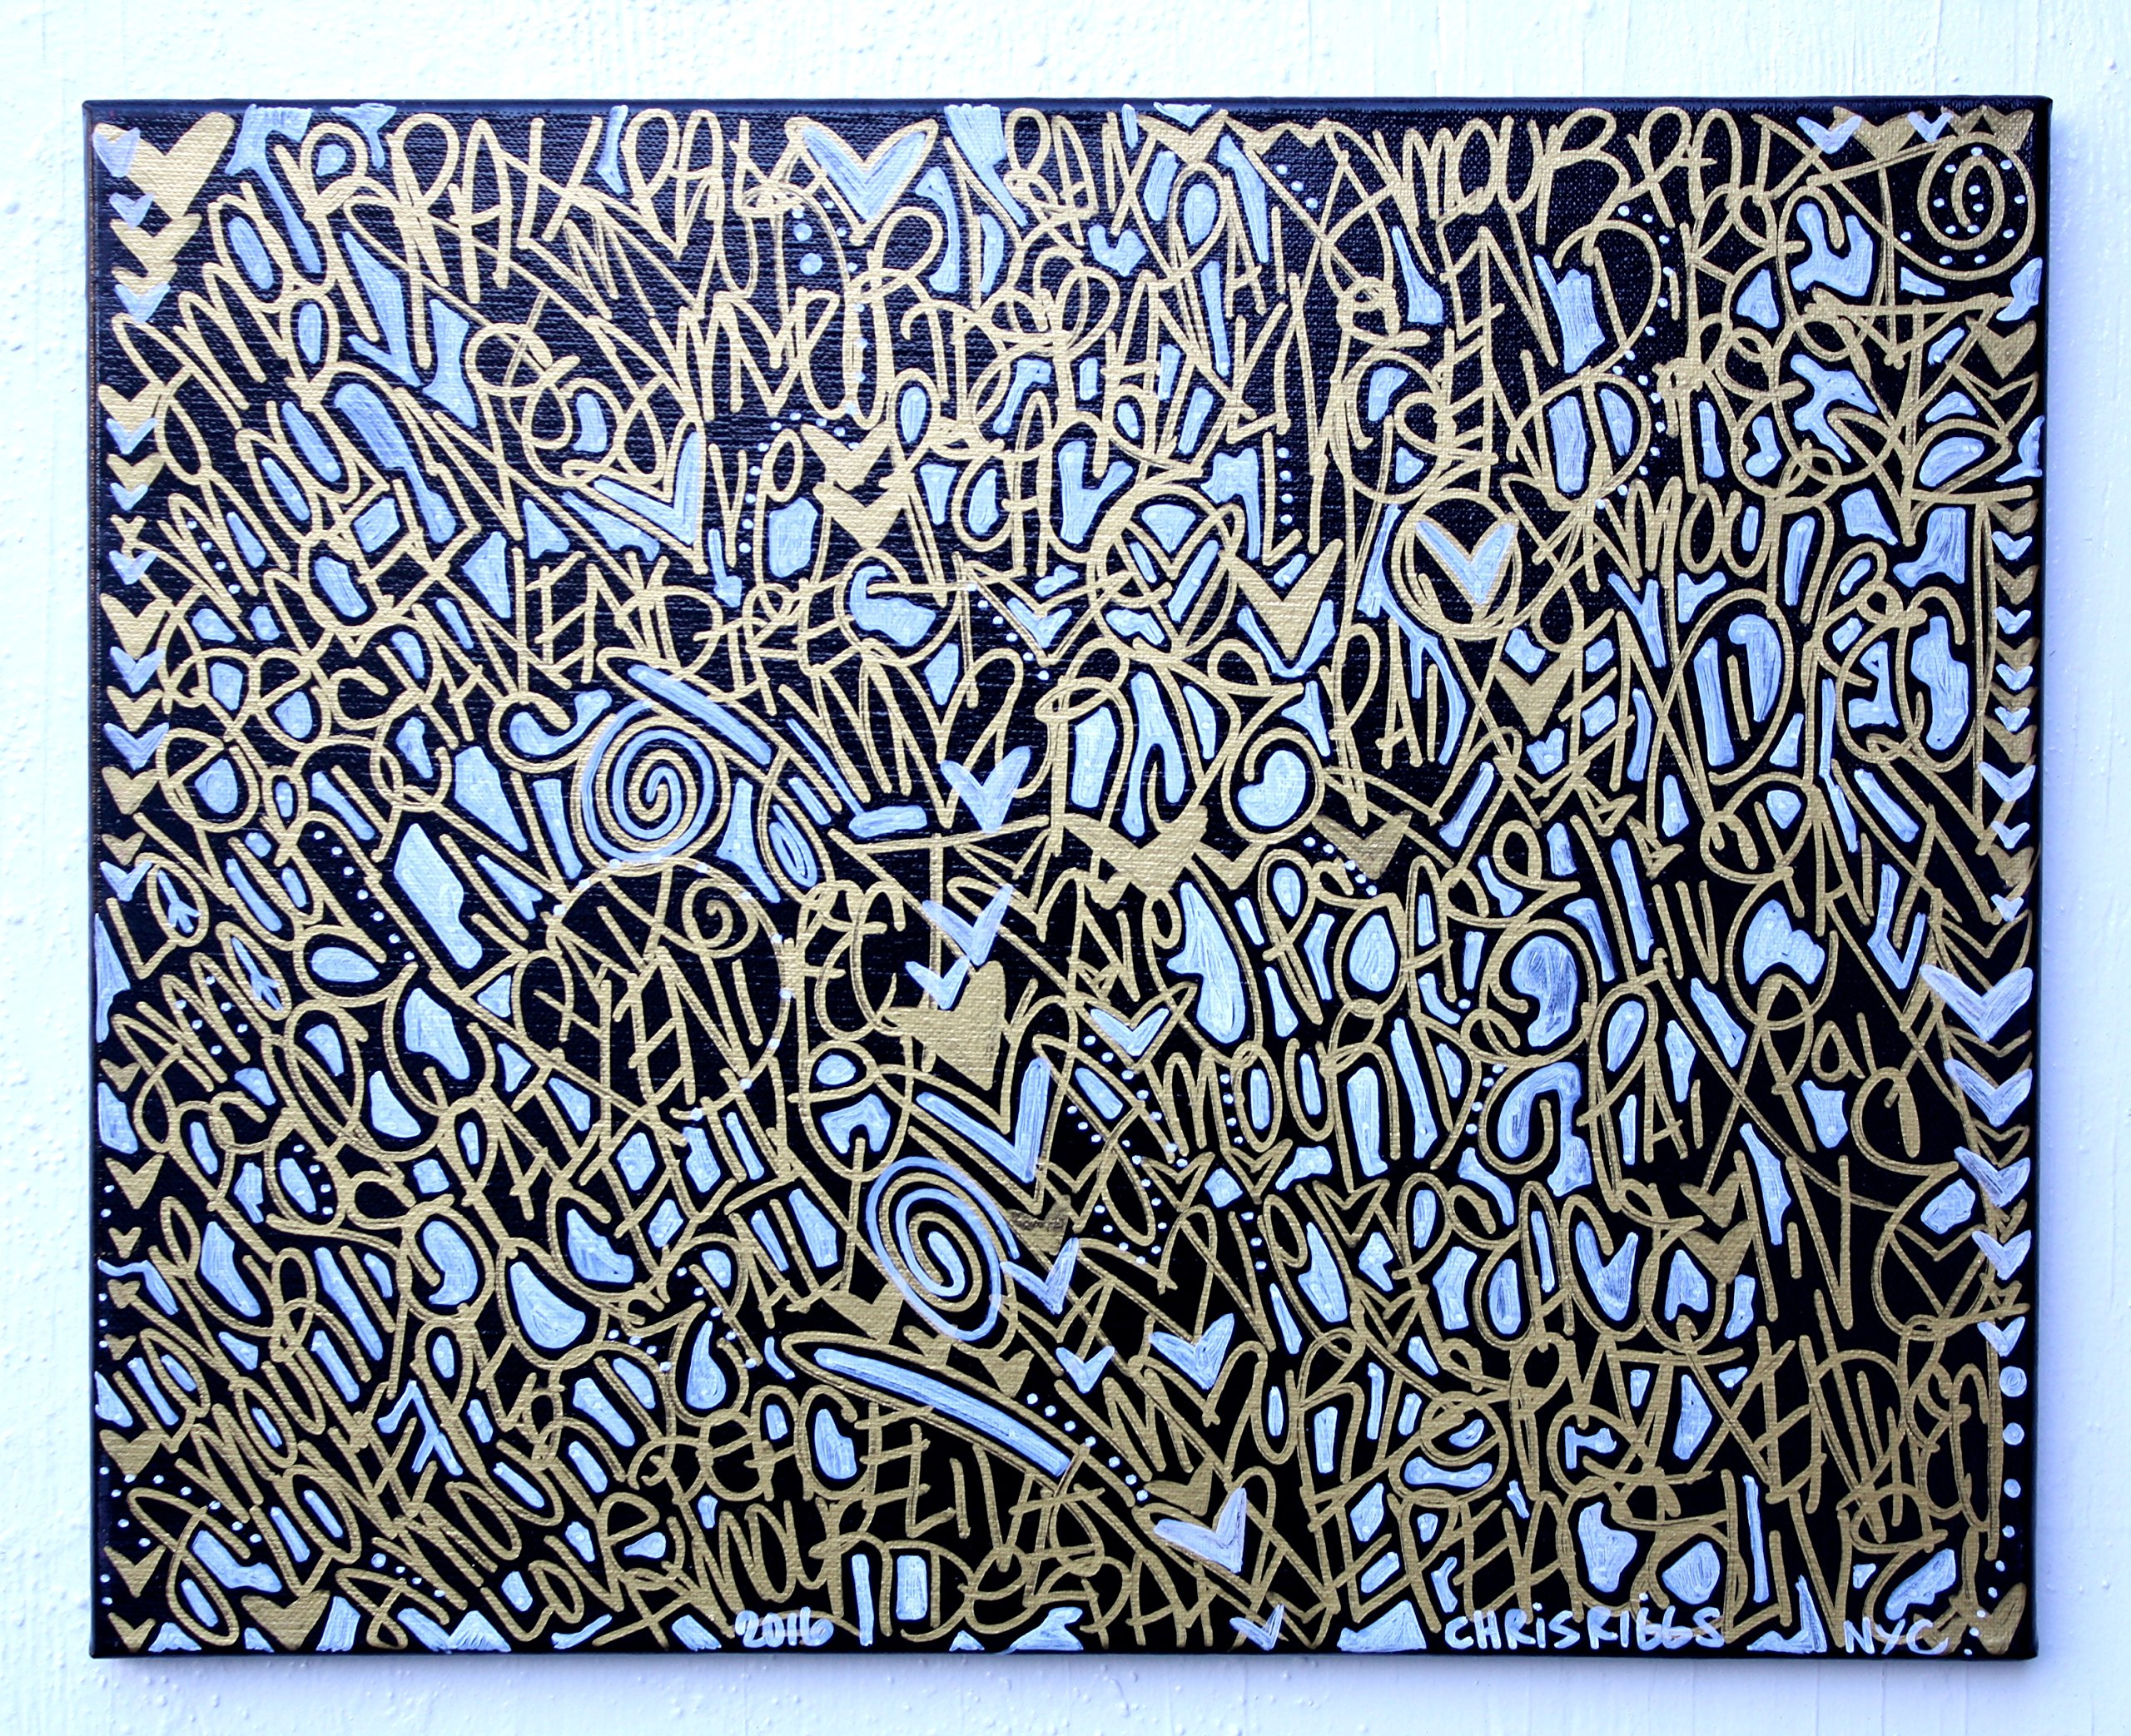 CHRIS RIGGS Original Love Peace Paix Amour french gold fine art painting 16'' x 20'' pop street art spray paint NYC acrylic contemporary modern art urban canvas by Chris Riggs Art Gallery (Image #1)